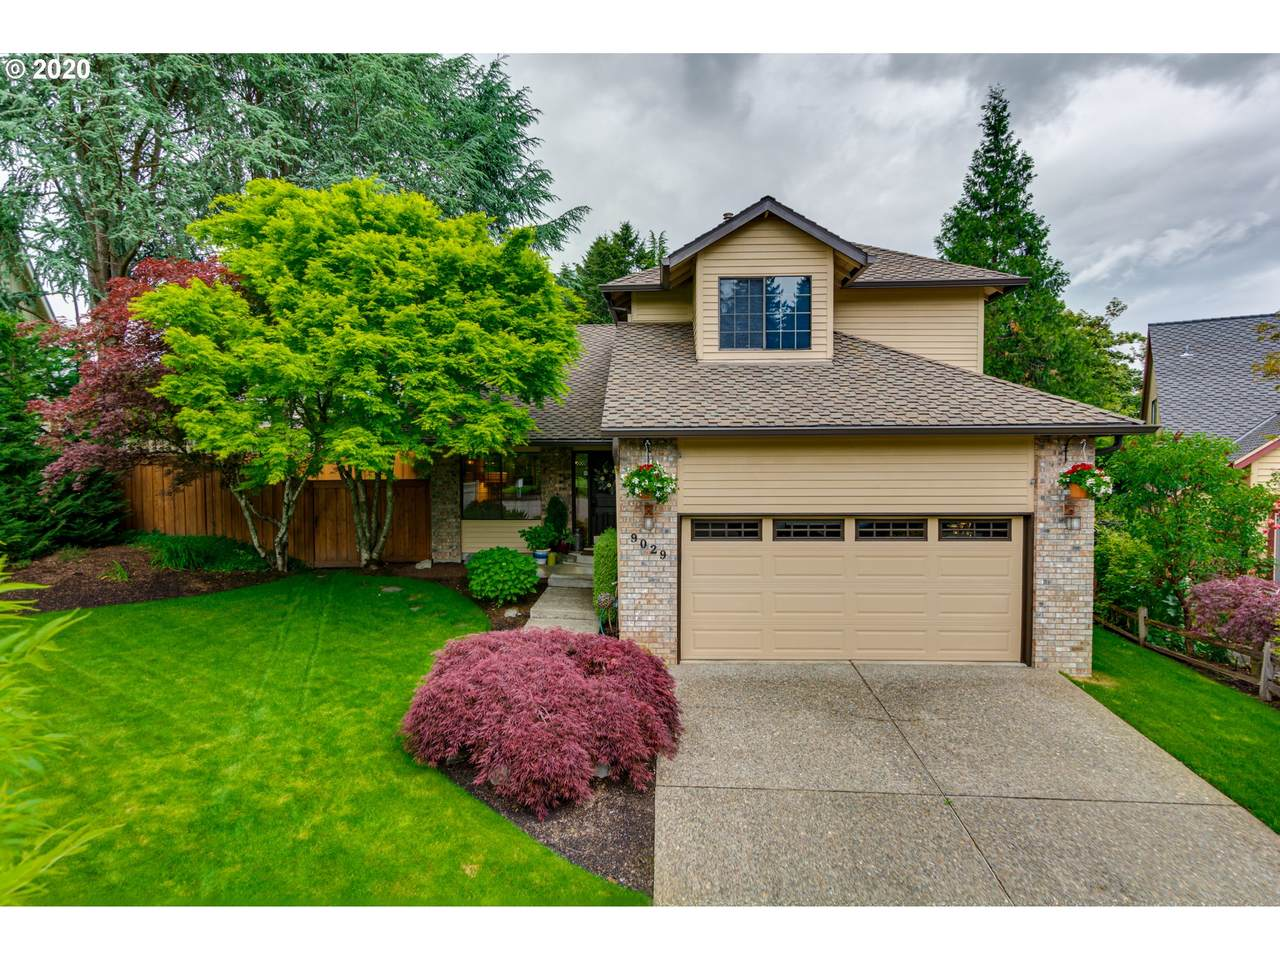 9029 Siletz Dr - Photo 1